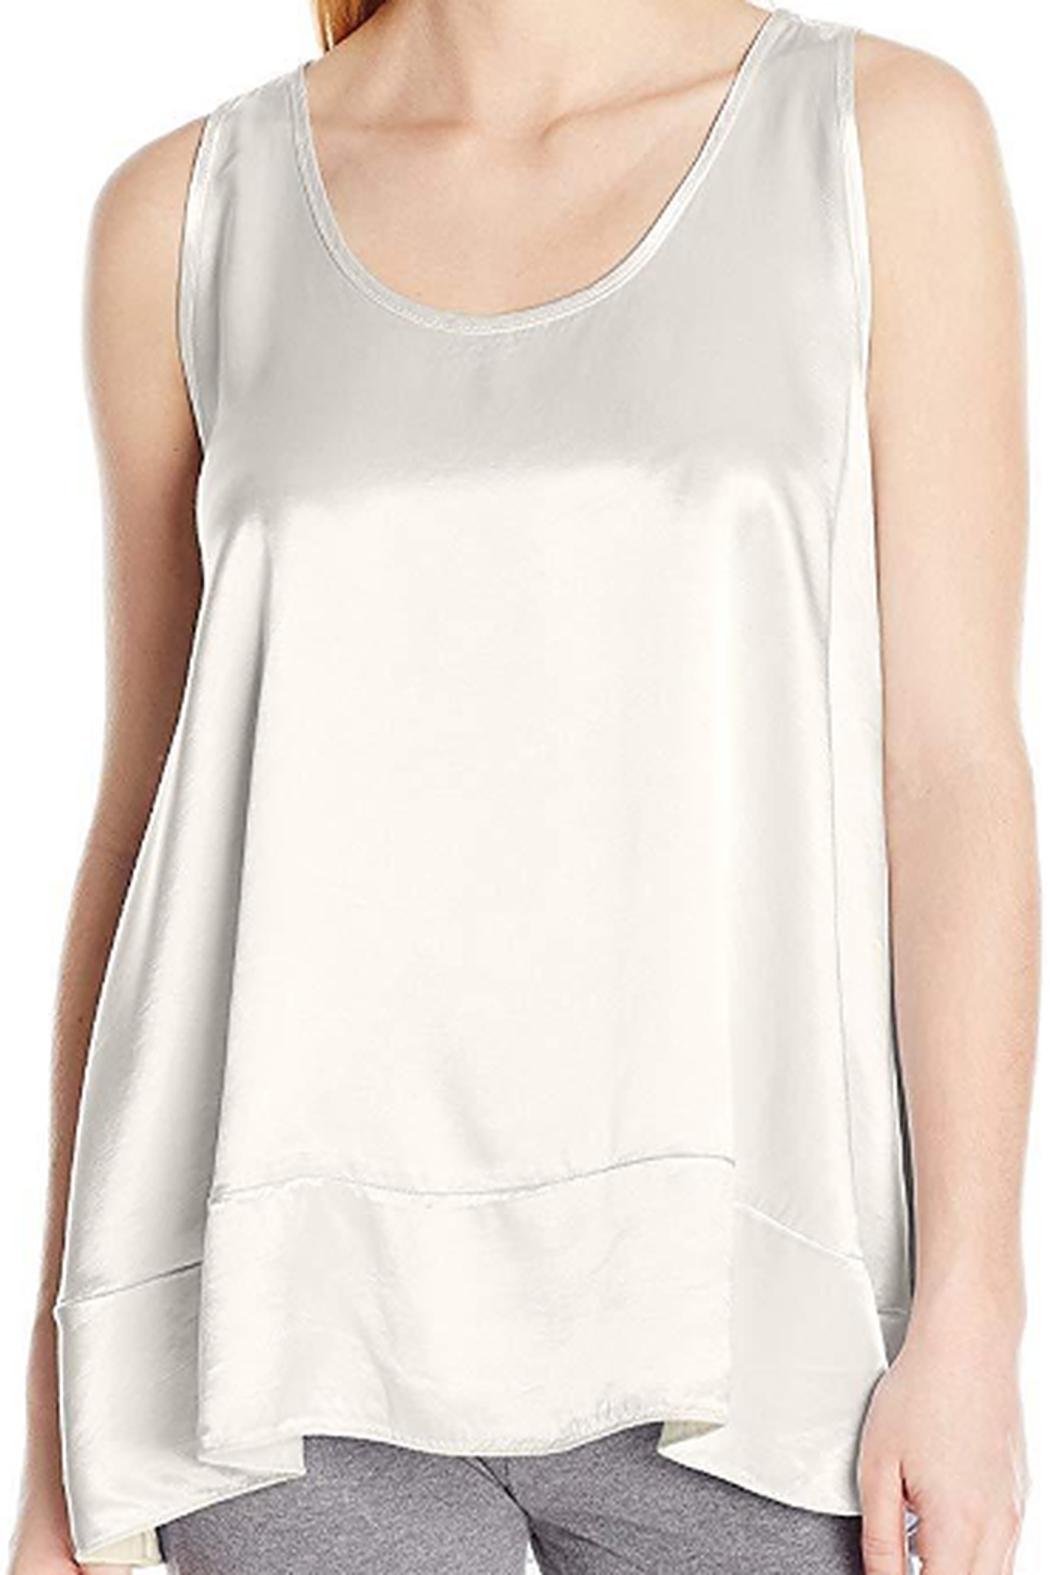 The Birds Nest NATALIE SATIN RUFFLE TANK - Front Cropped Image